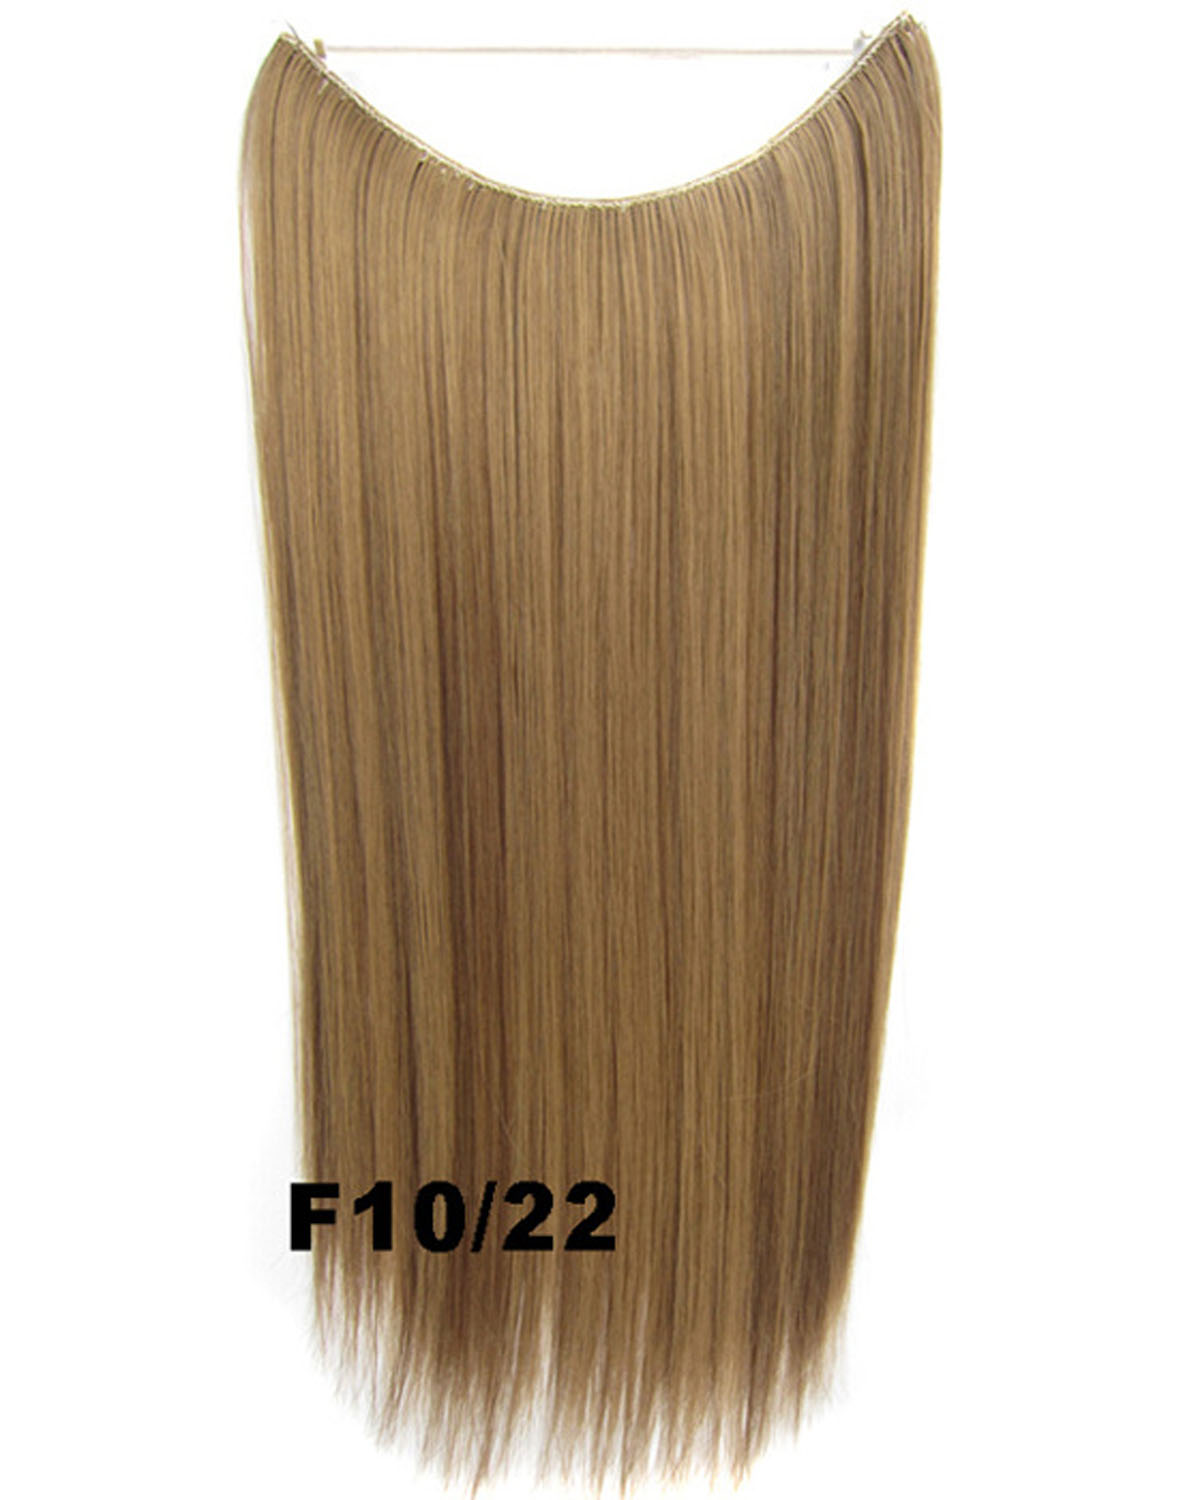 22 Inch Popular Straight and Long Invisible One Piece Miracle Wire Flip in Synthetic Hair Extension F10/22